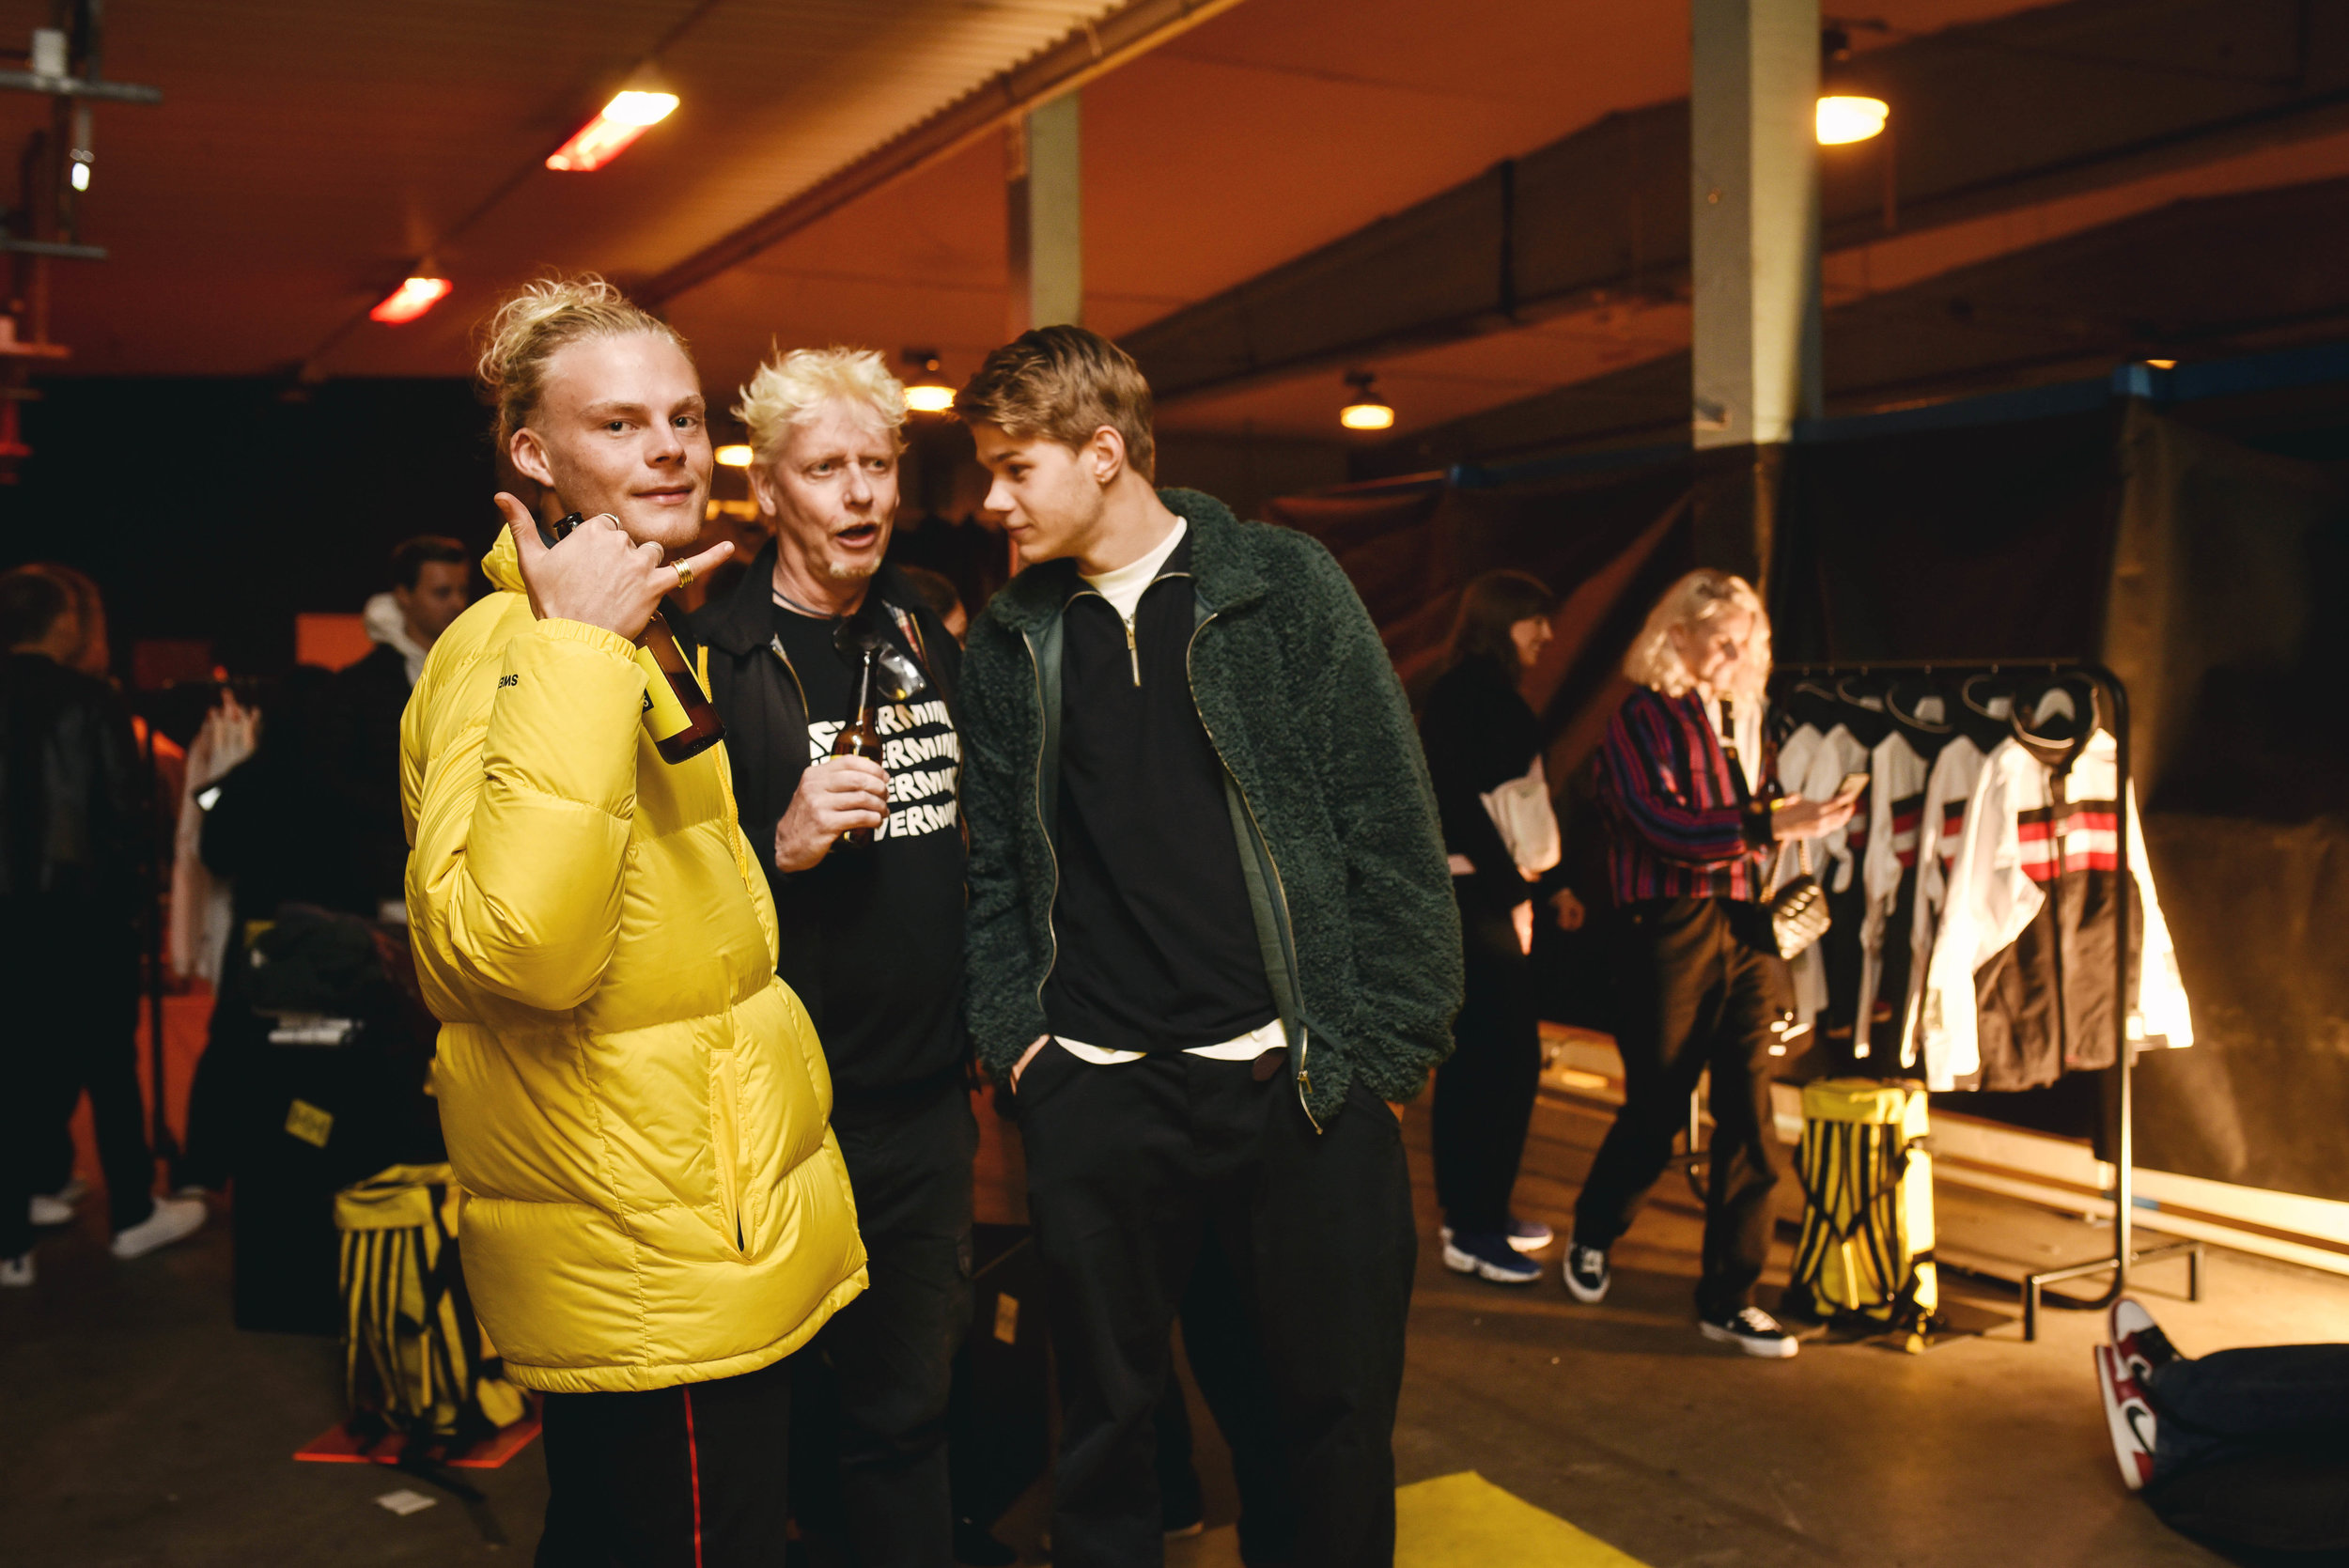 SWEET SKTBS x HELLY HANSEN AW17 REALESE1709SWEET SKTBS x HELLY HANSEN AW17 REALESE_0856_1.jpg